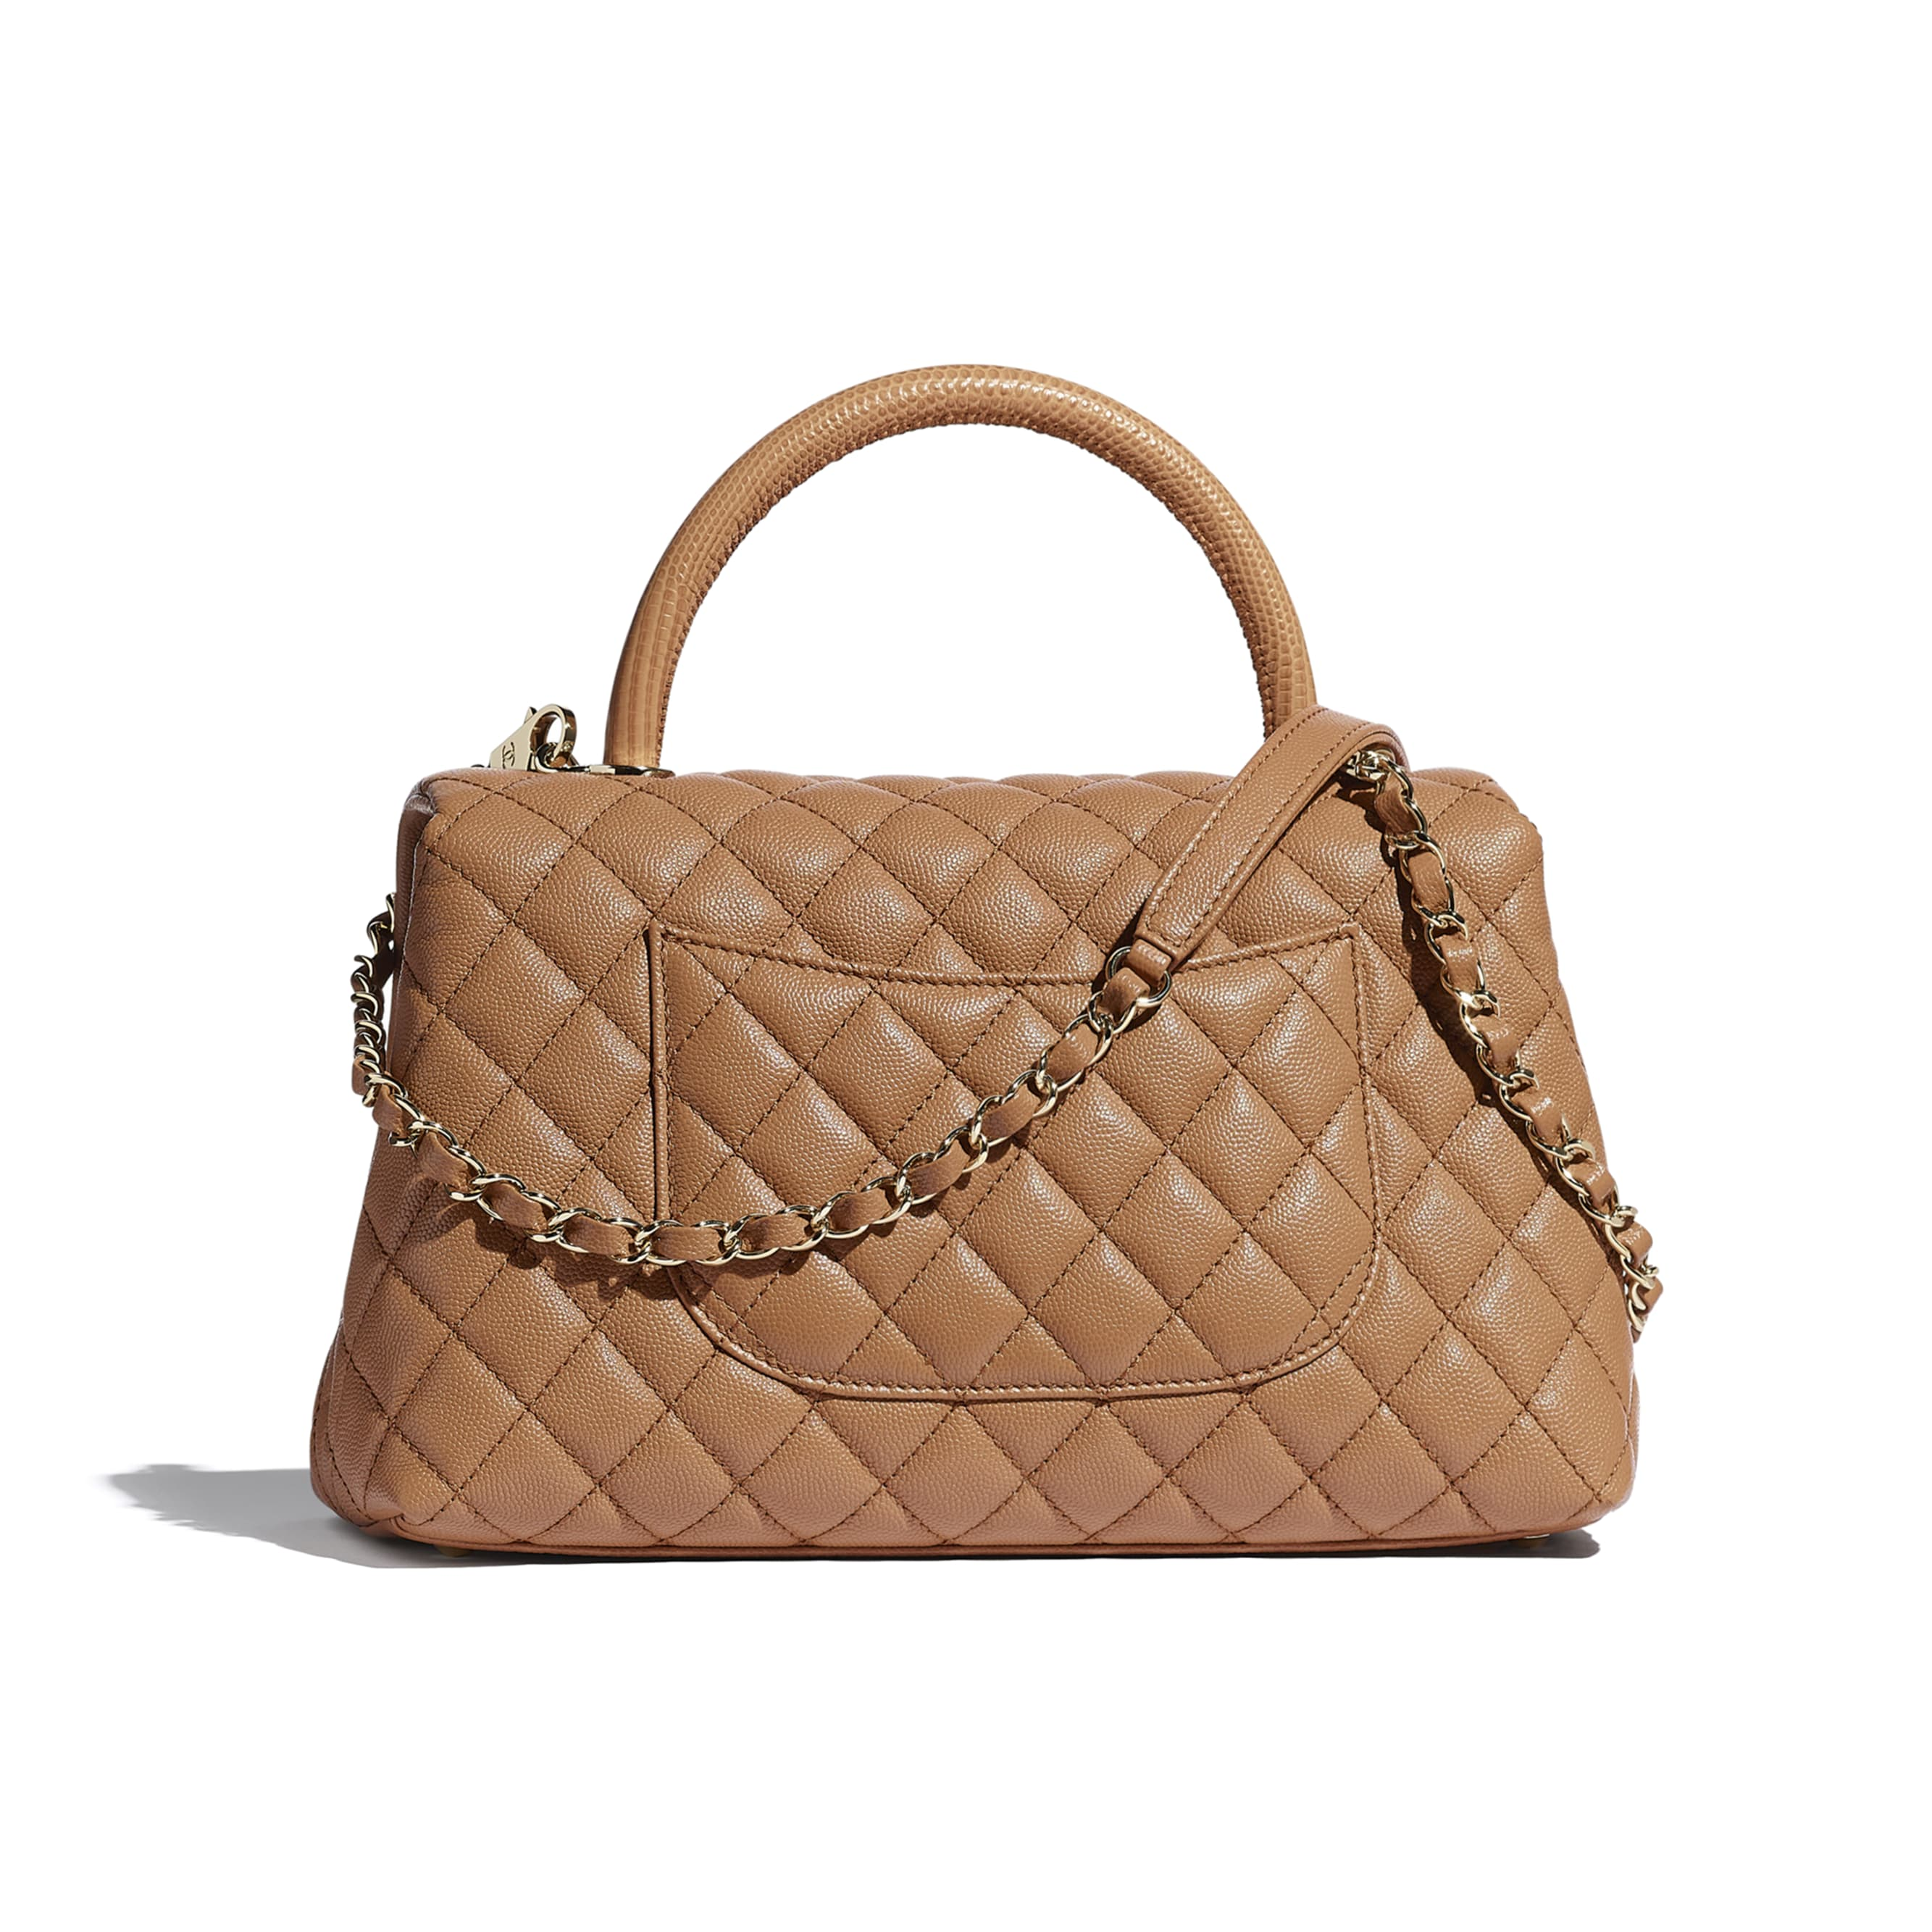 Large Flap Bag With Top Handle - Brown - Grained Calfskin, Lizard Embossed Calfskin & Gold-Tone Metal - CHANEL - Alternative view - see standard sized version